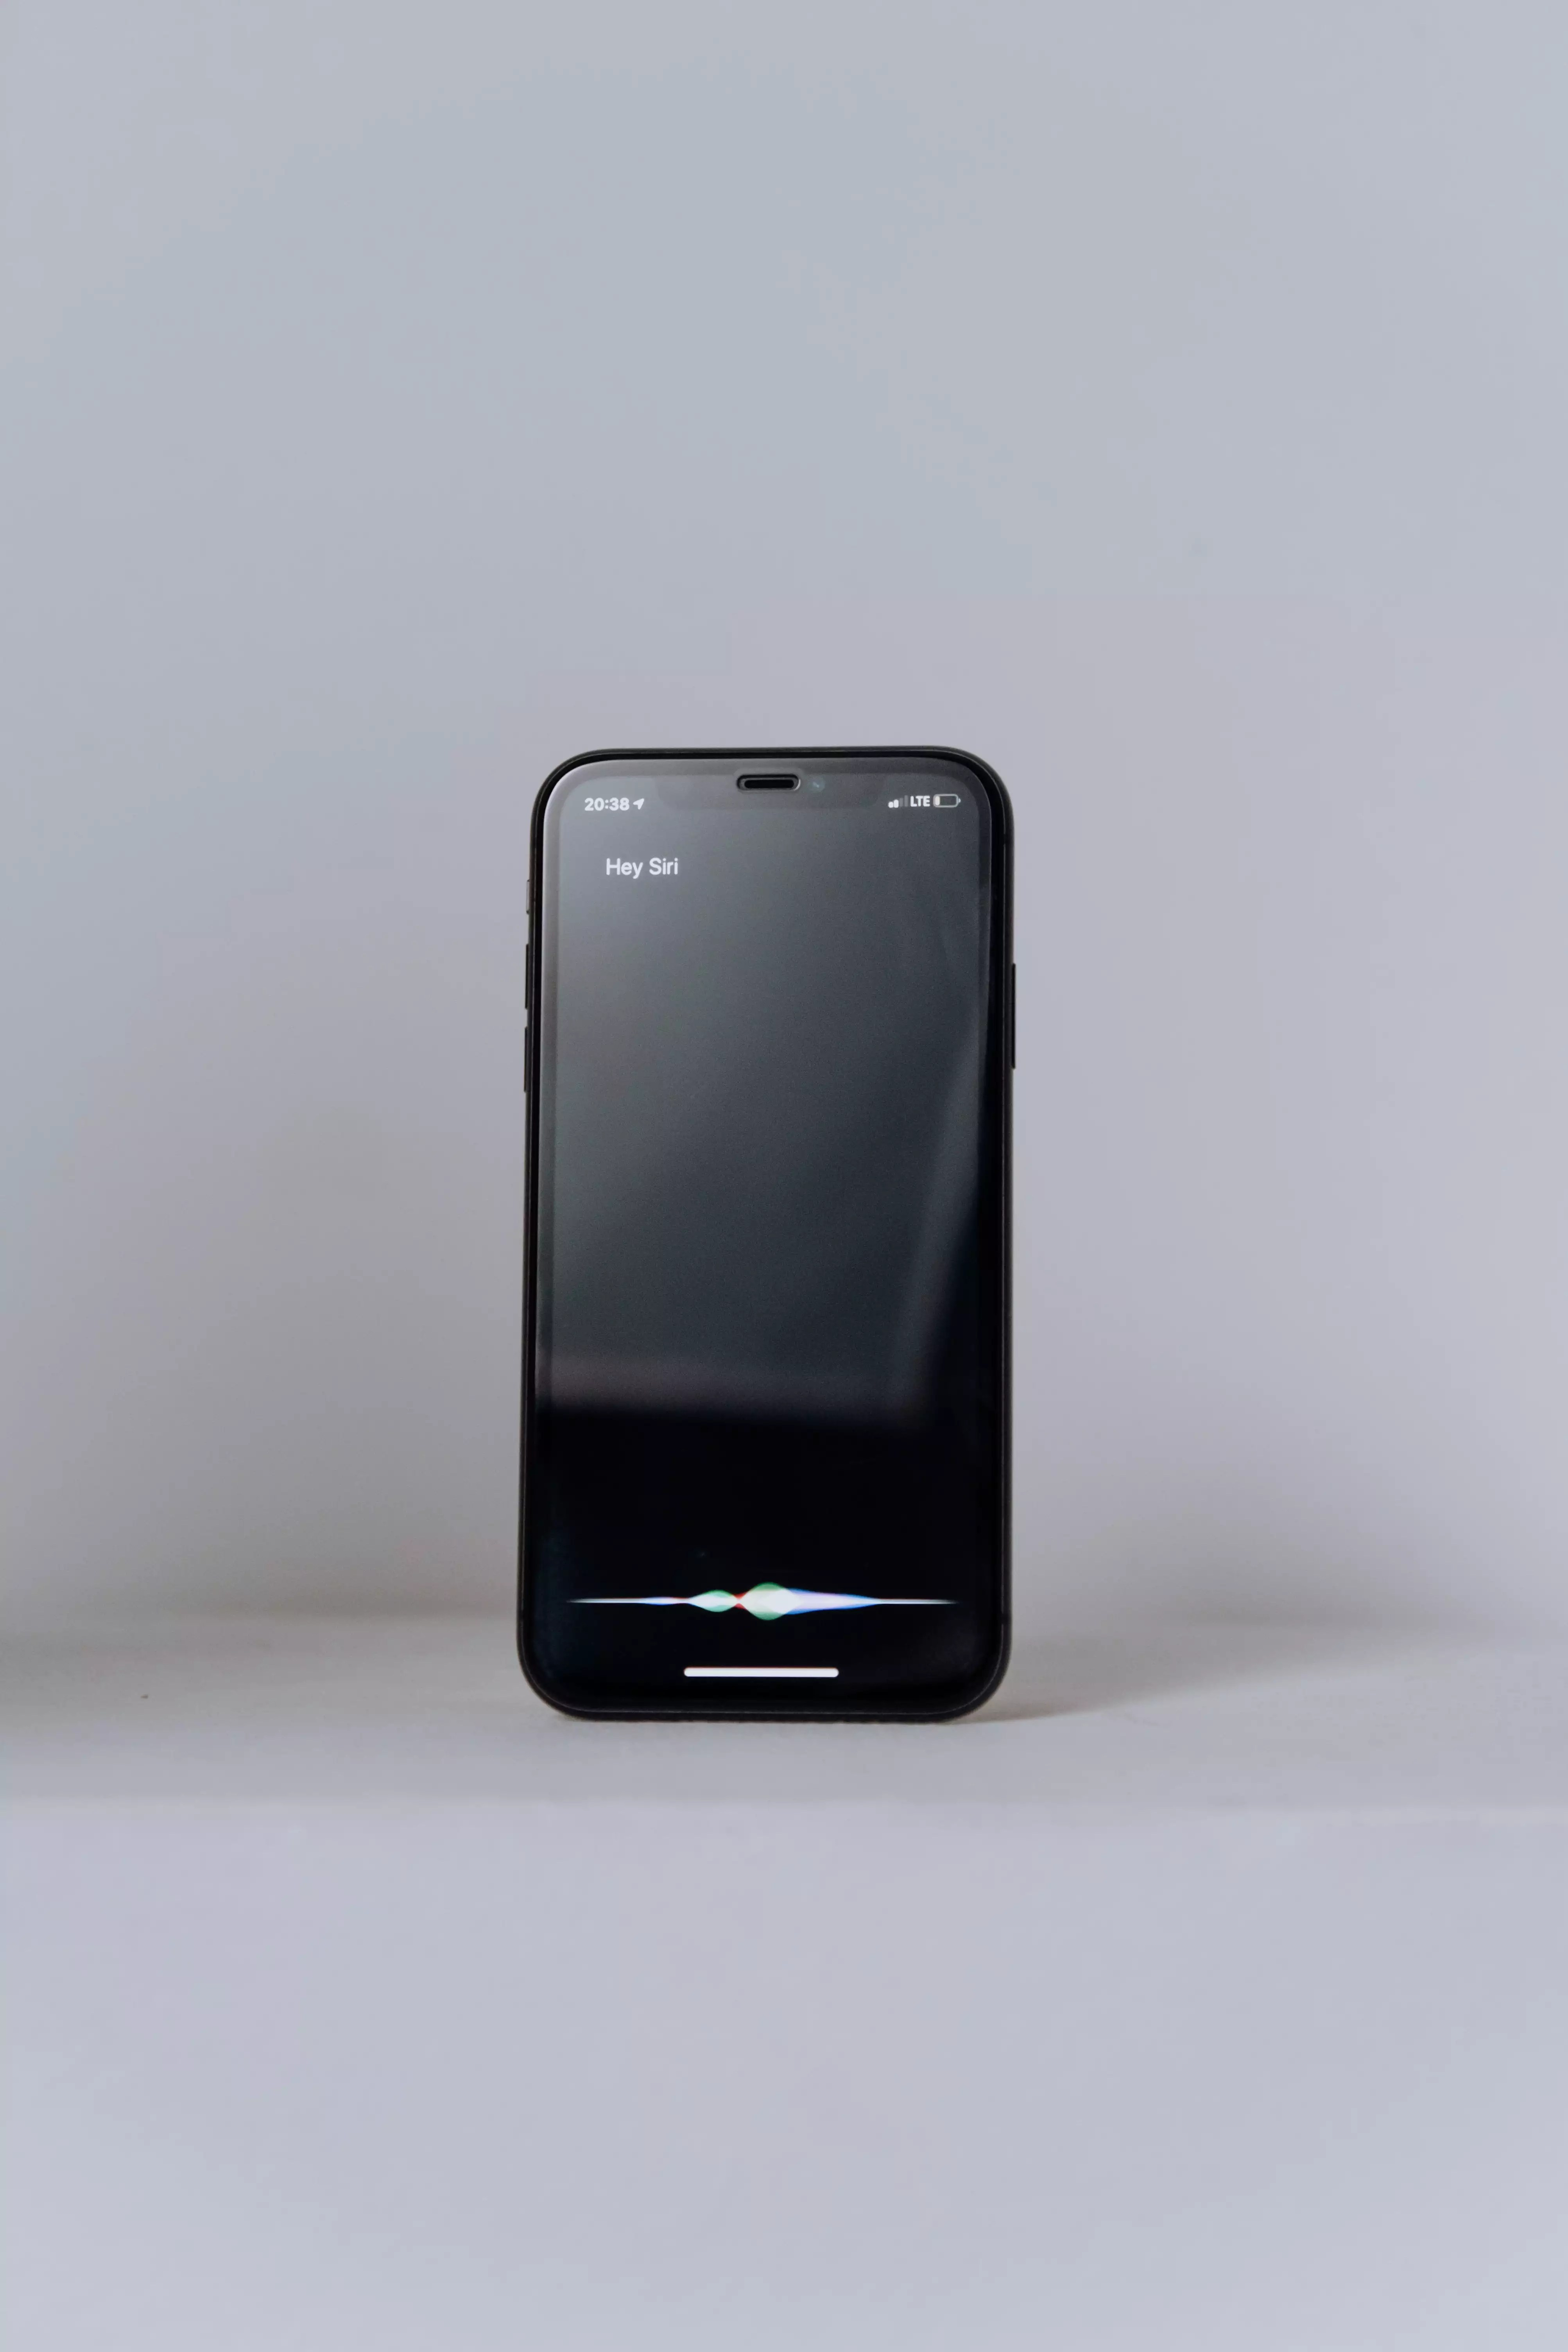 Pru Hs Plus : IPhone, Price,, Specifications, Features, Gadgets, 2021)